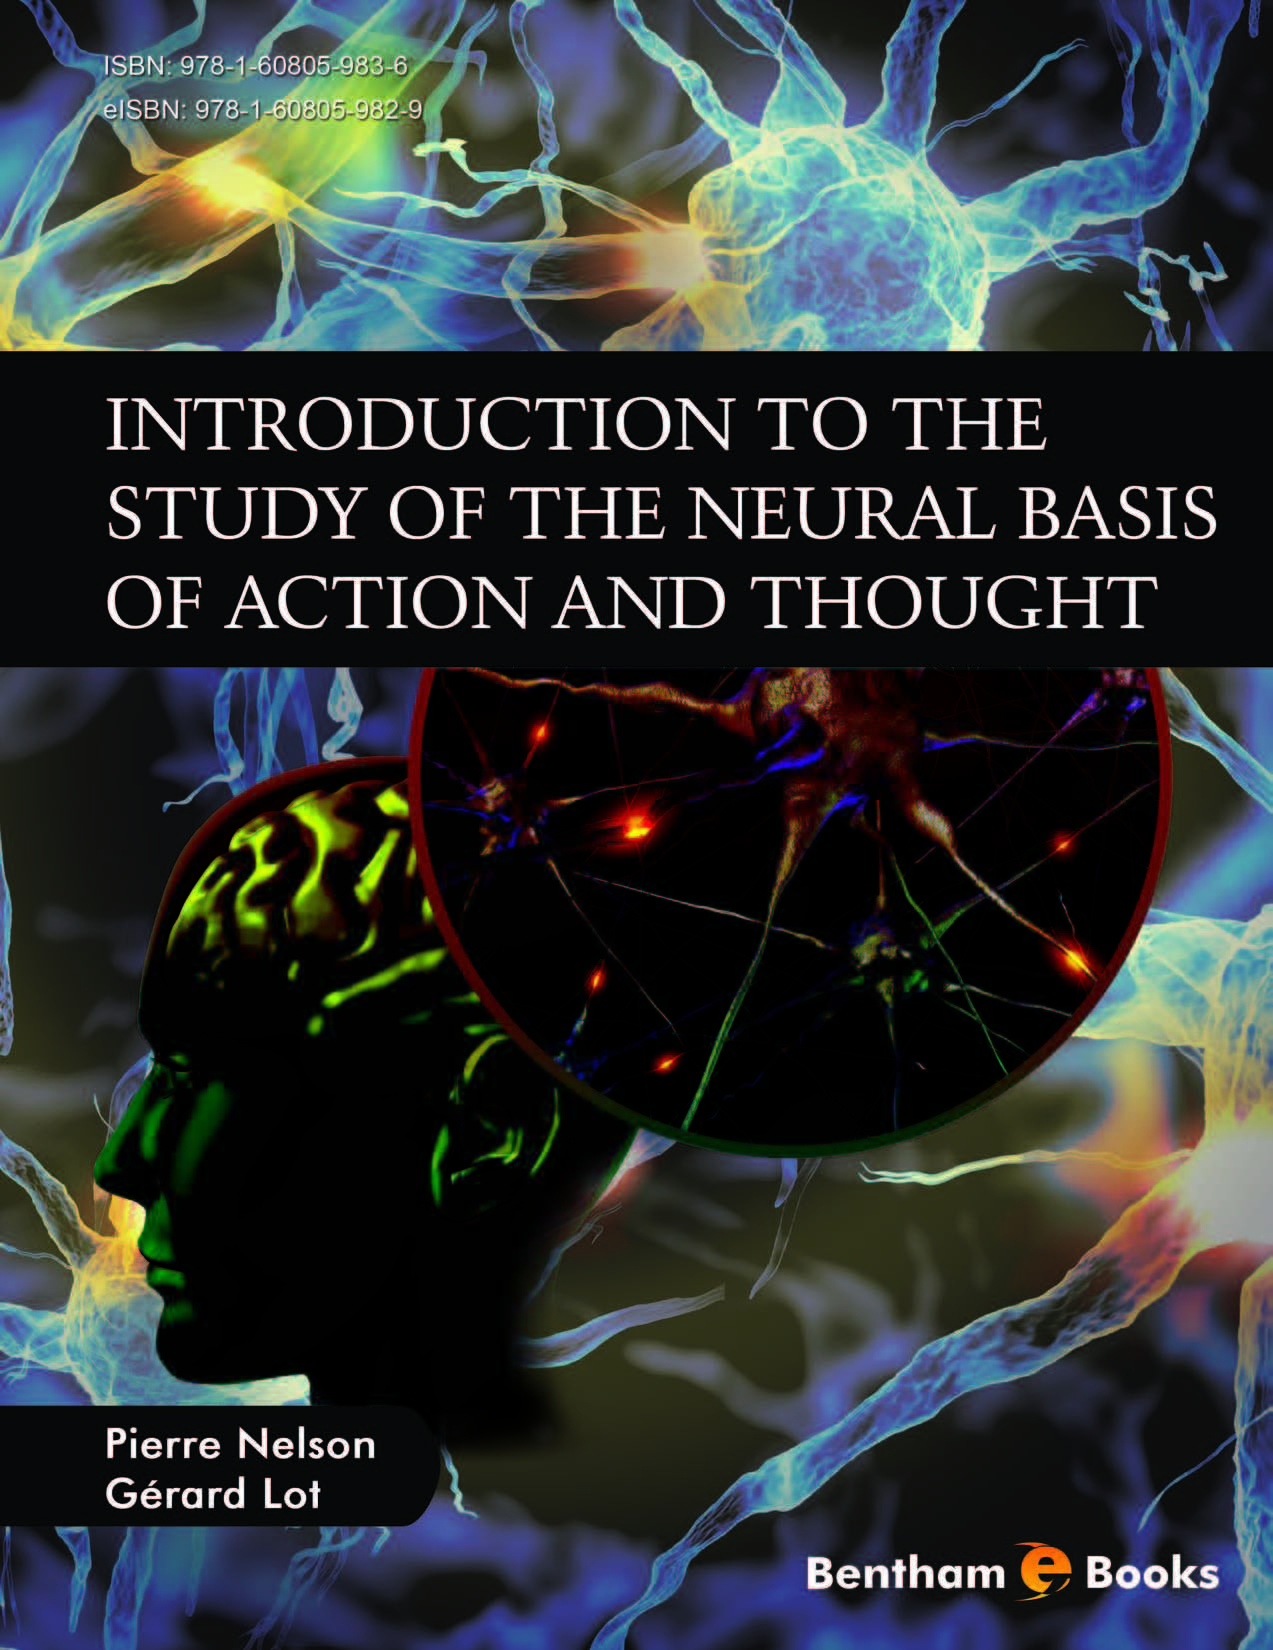 Introduction to the Study of the Neural Basis of Action and Thought